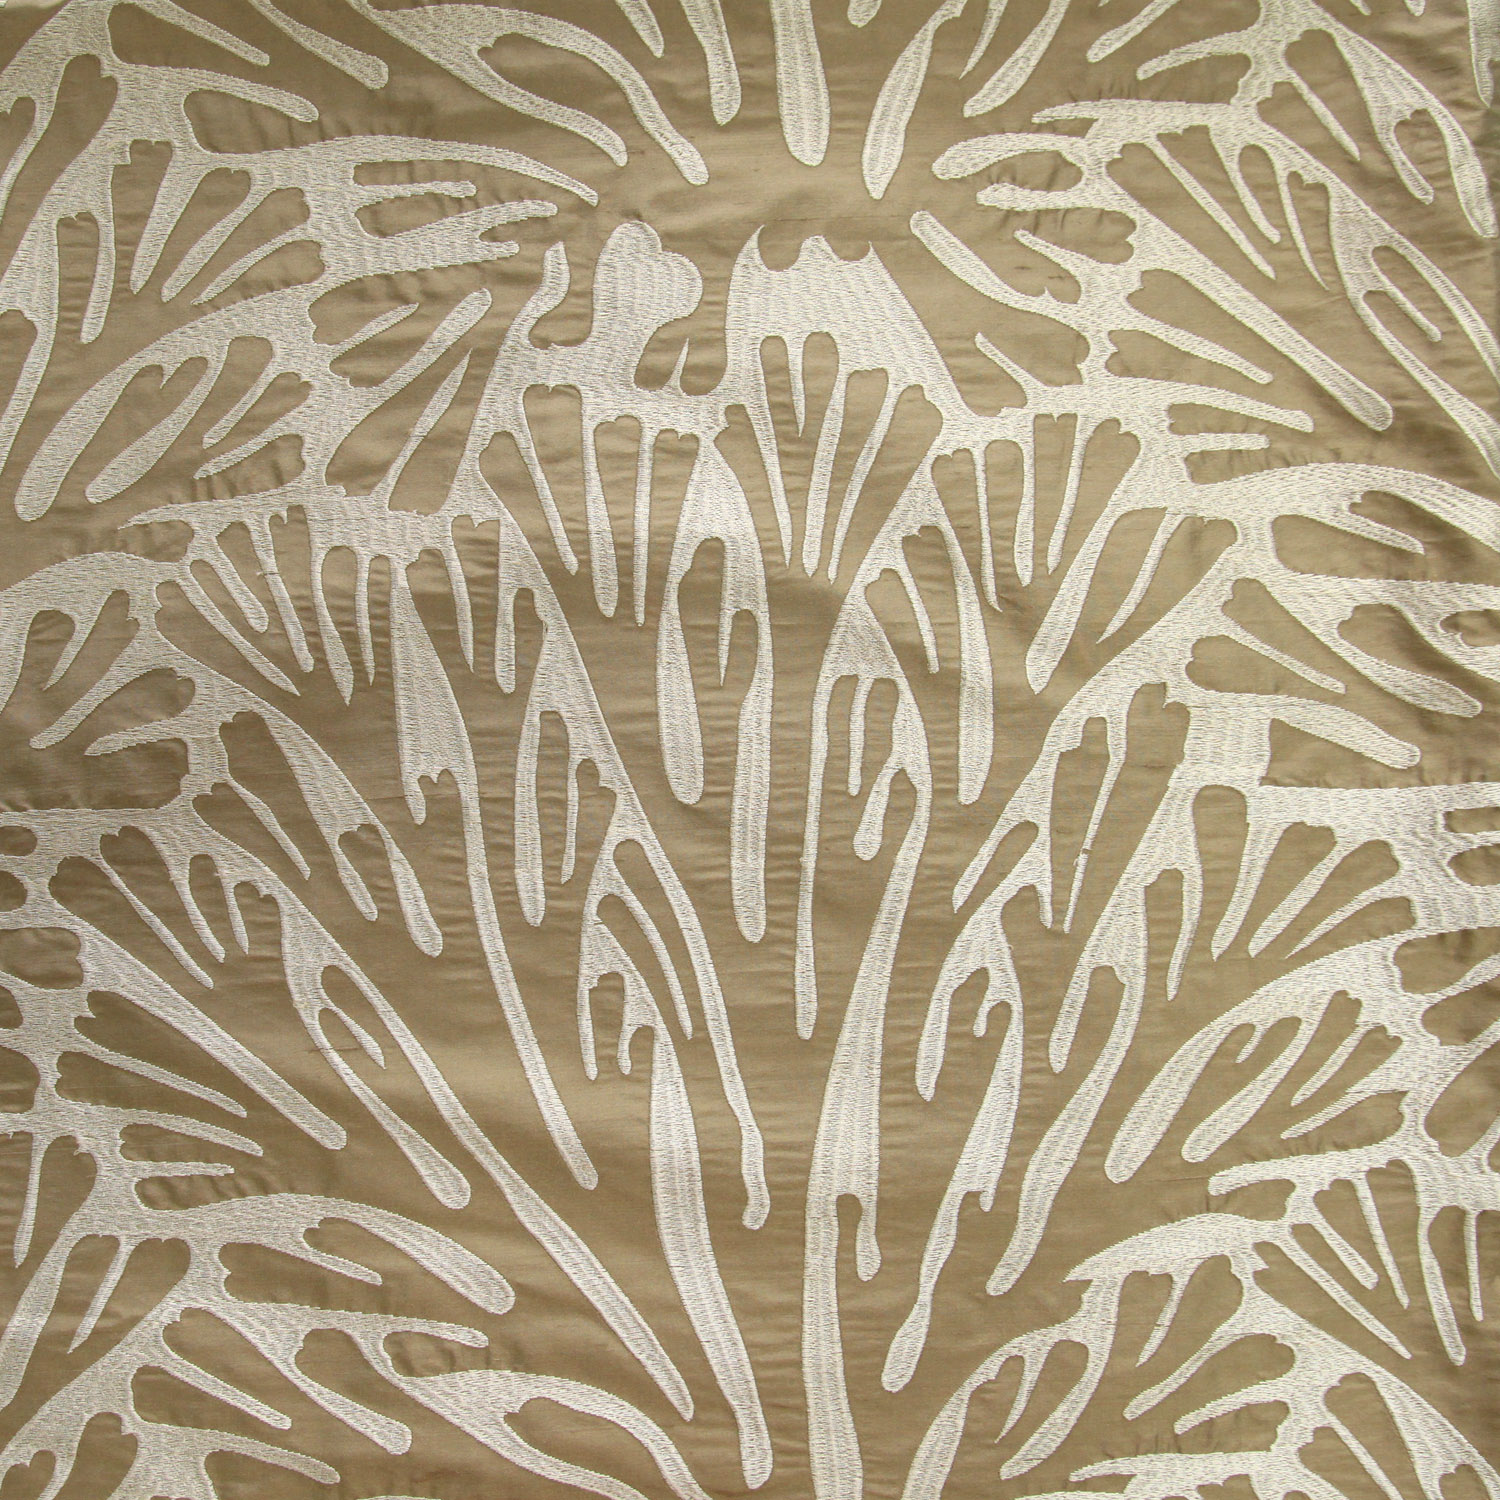 Embossed Oatmeal Brown Ornamental Motif On Almond Brown Cotton Blend